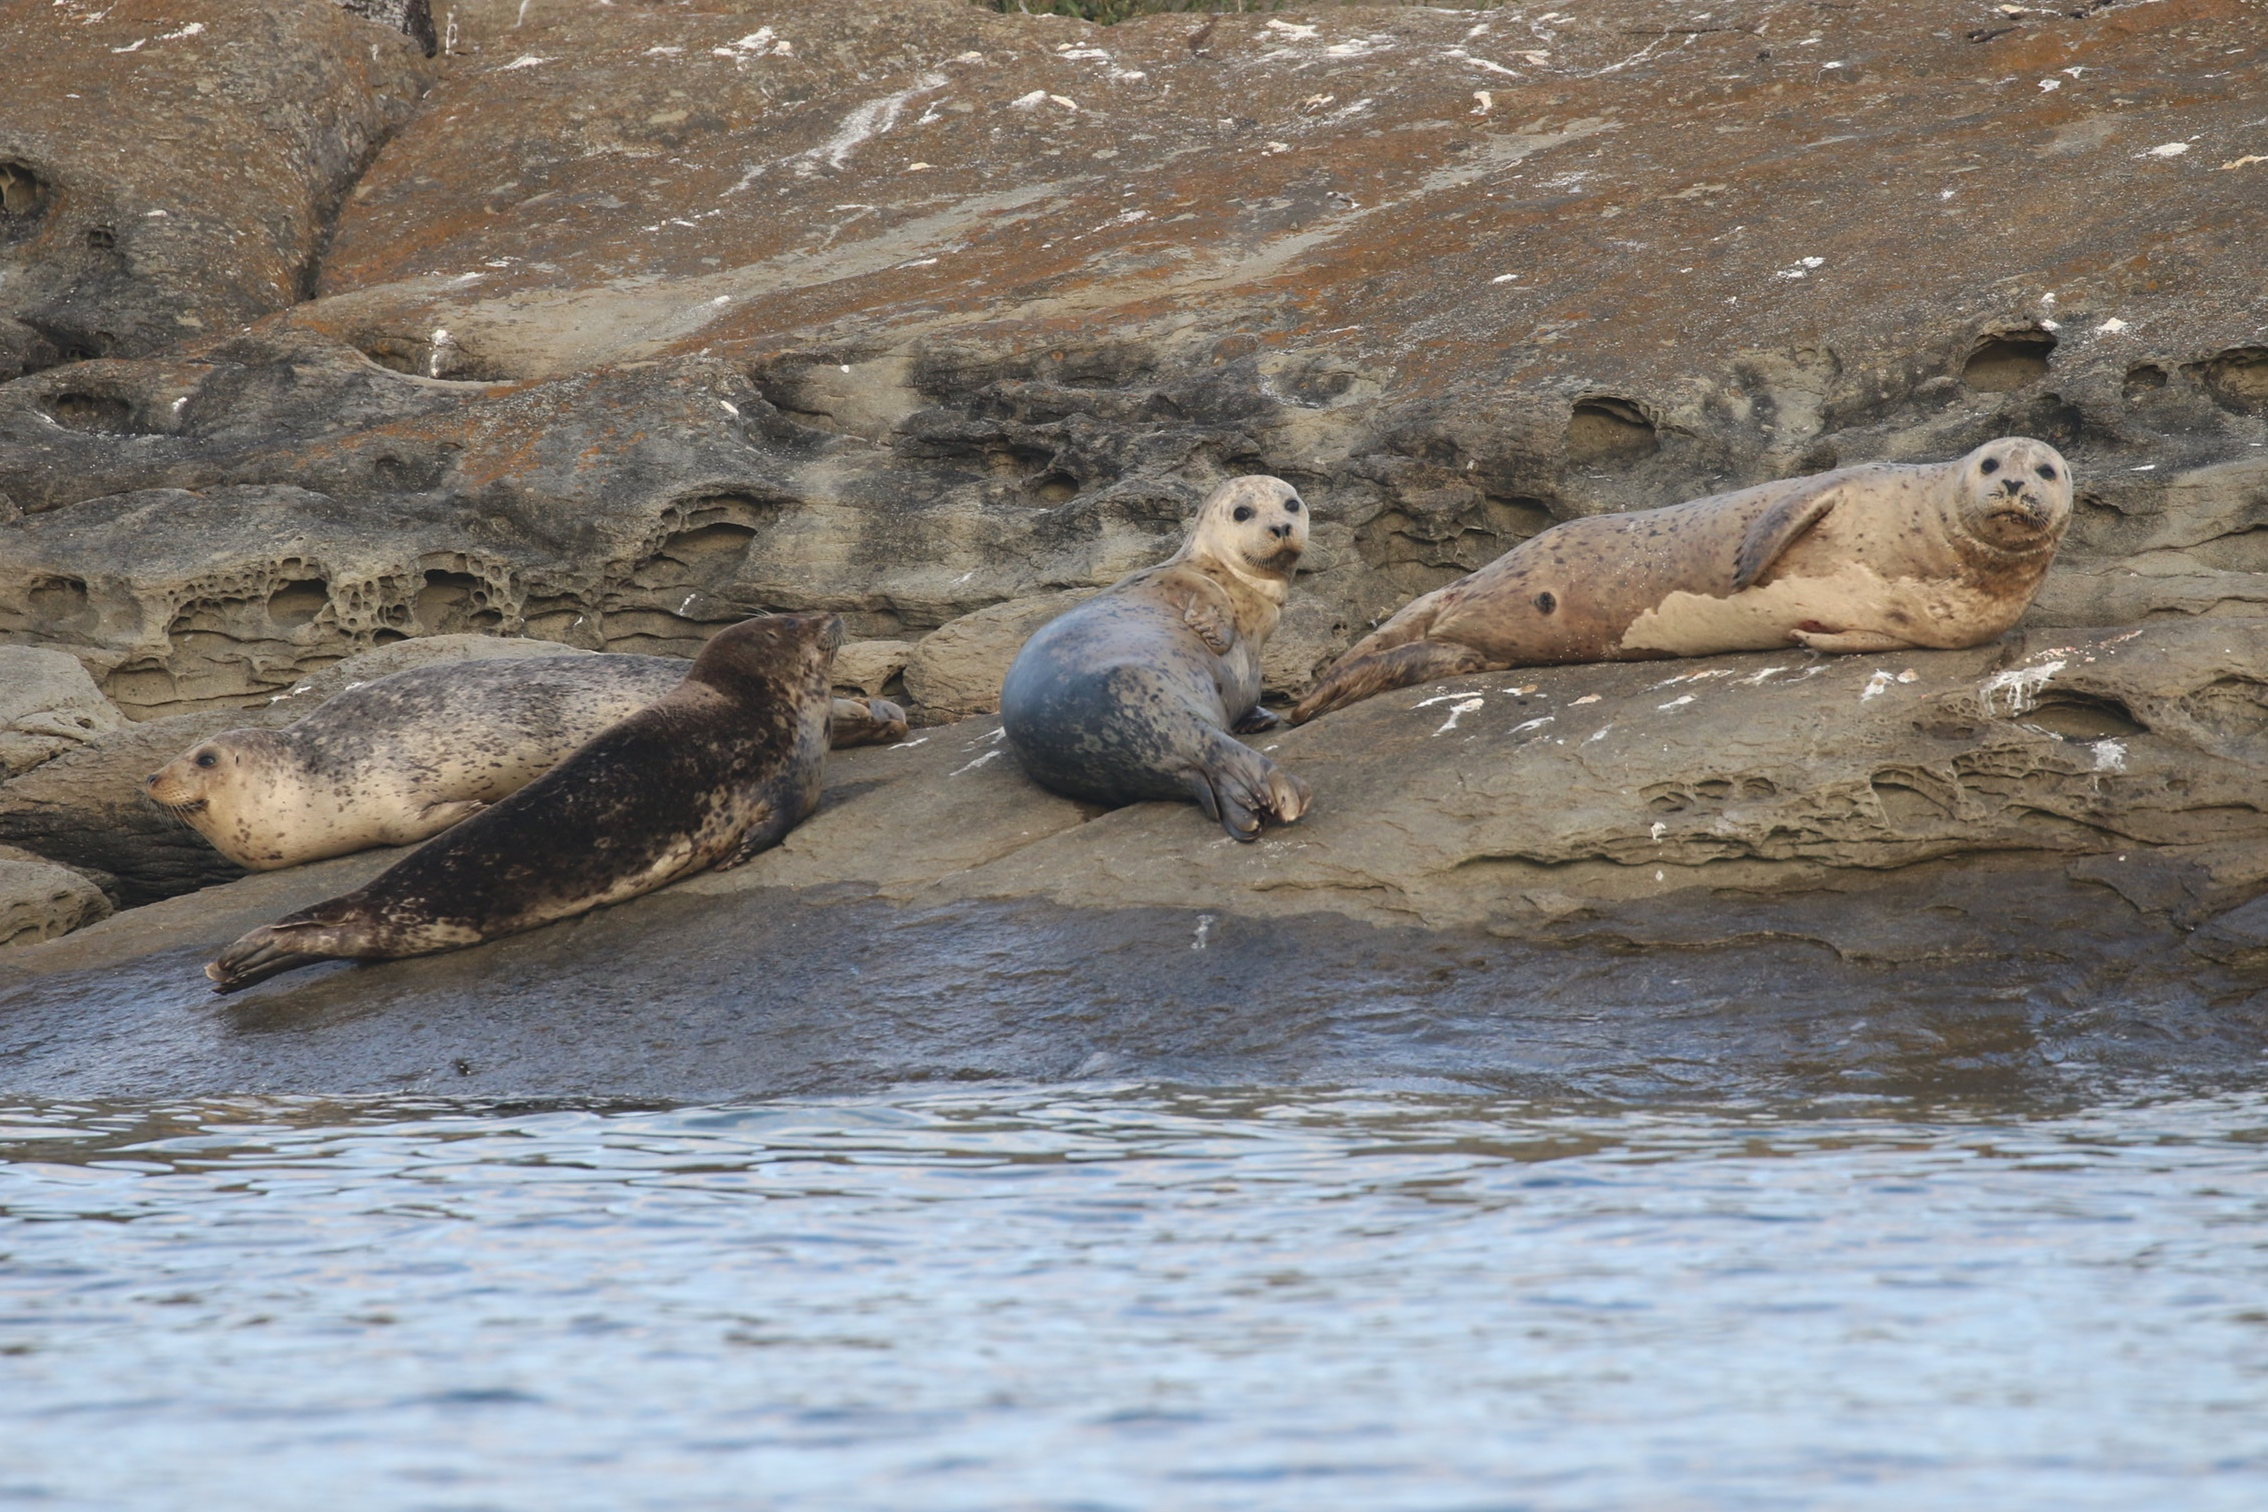 A bob of Harbour Seals a.k.a. Rock Sausages watching the boat curiously. Photo by Ryan Uslu (3:30).